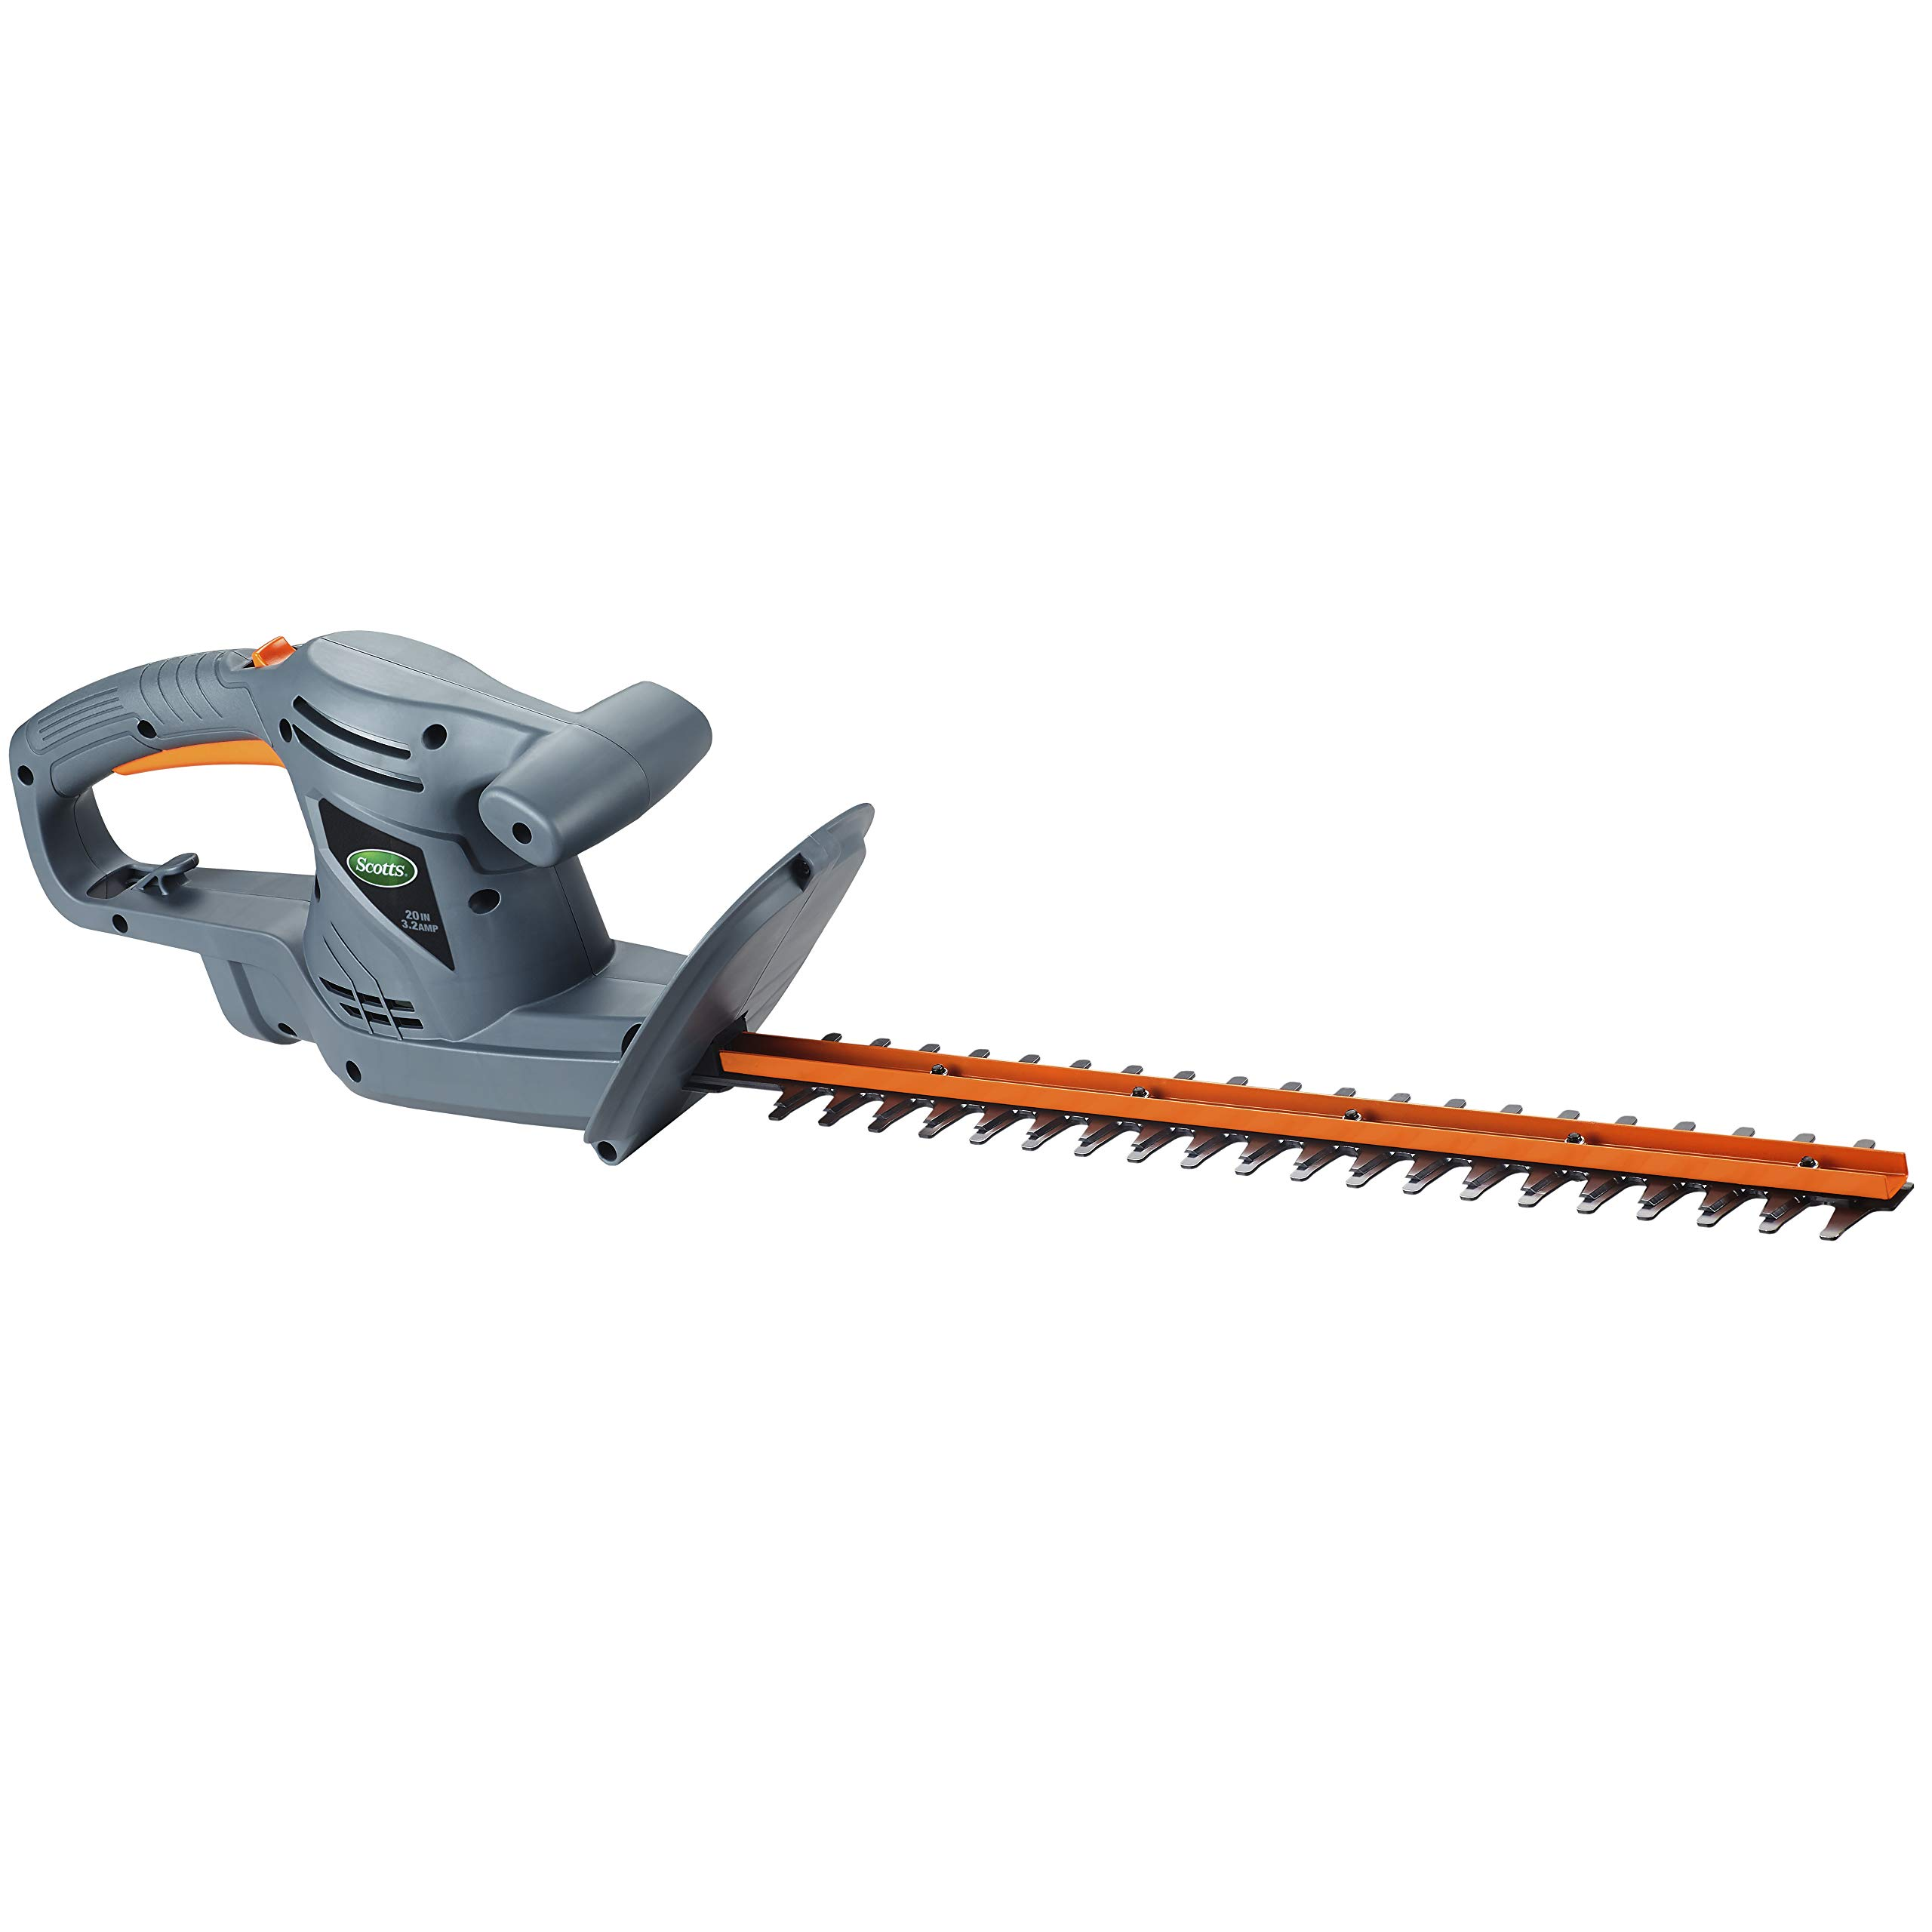 Scotts Outdoor Power Tools HT10020S 20-Inch 3.2-Amp Corded Electric Hedge Trimmer, Grey by Scotts Outdoor Power Tools